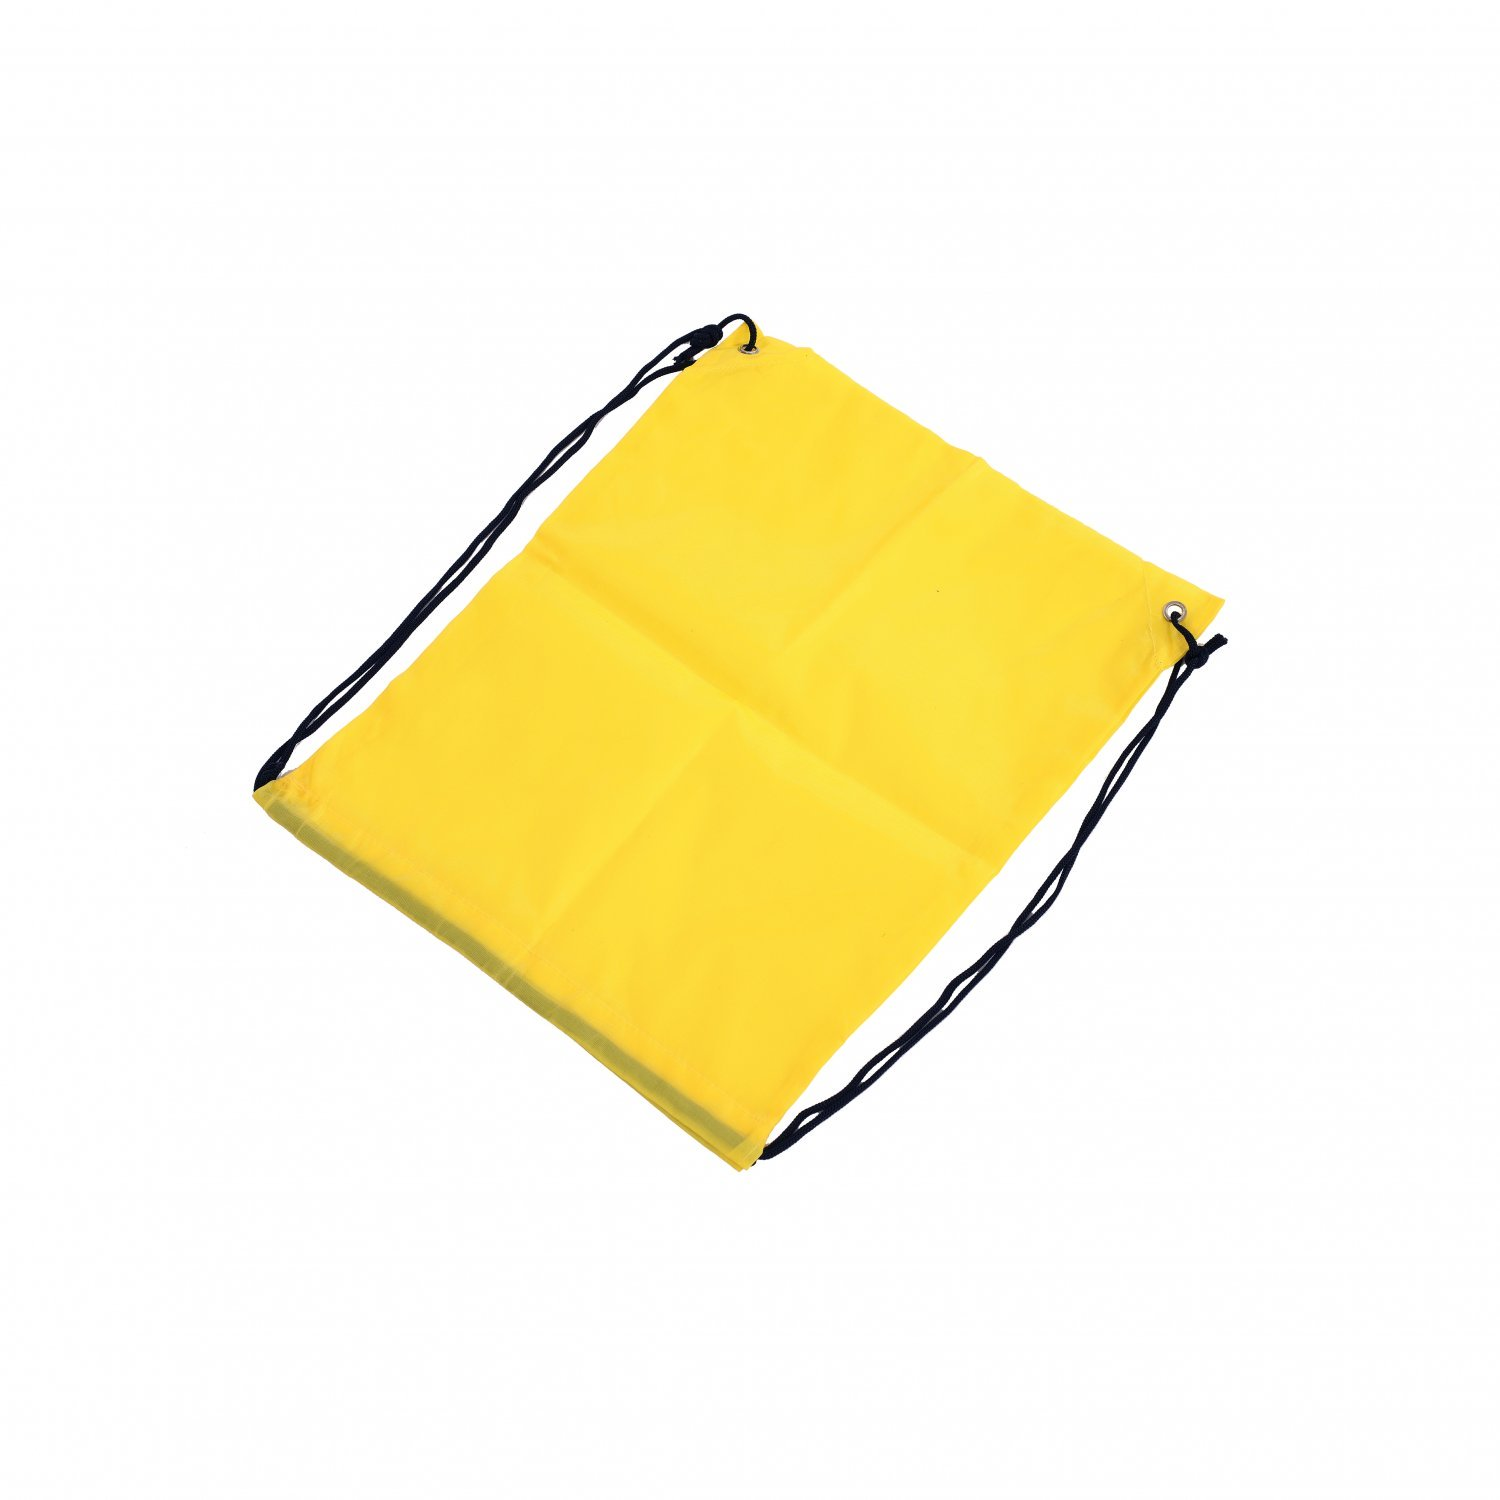 Oxford Cloth Sports PE Yellow Laundry Drawstring Bag